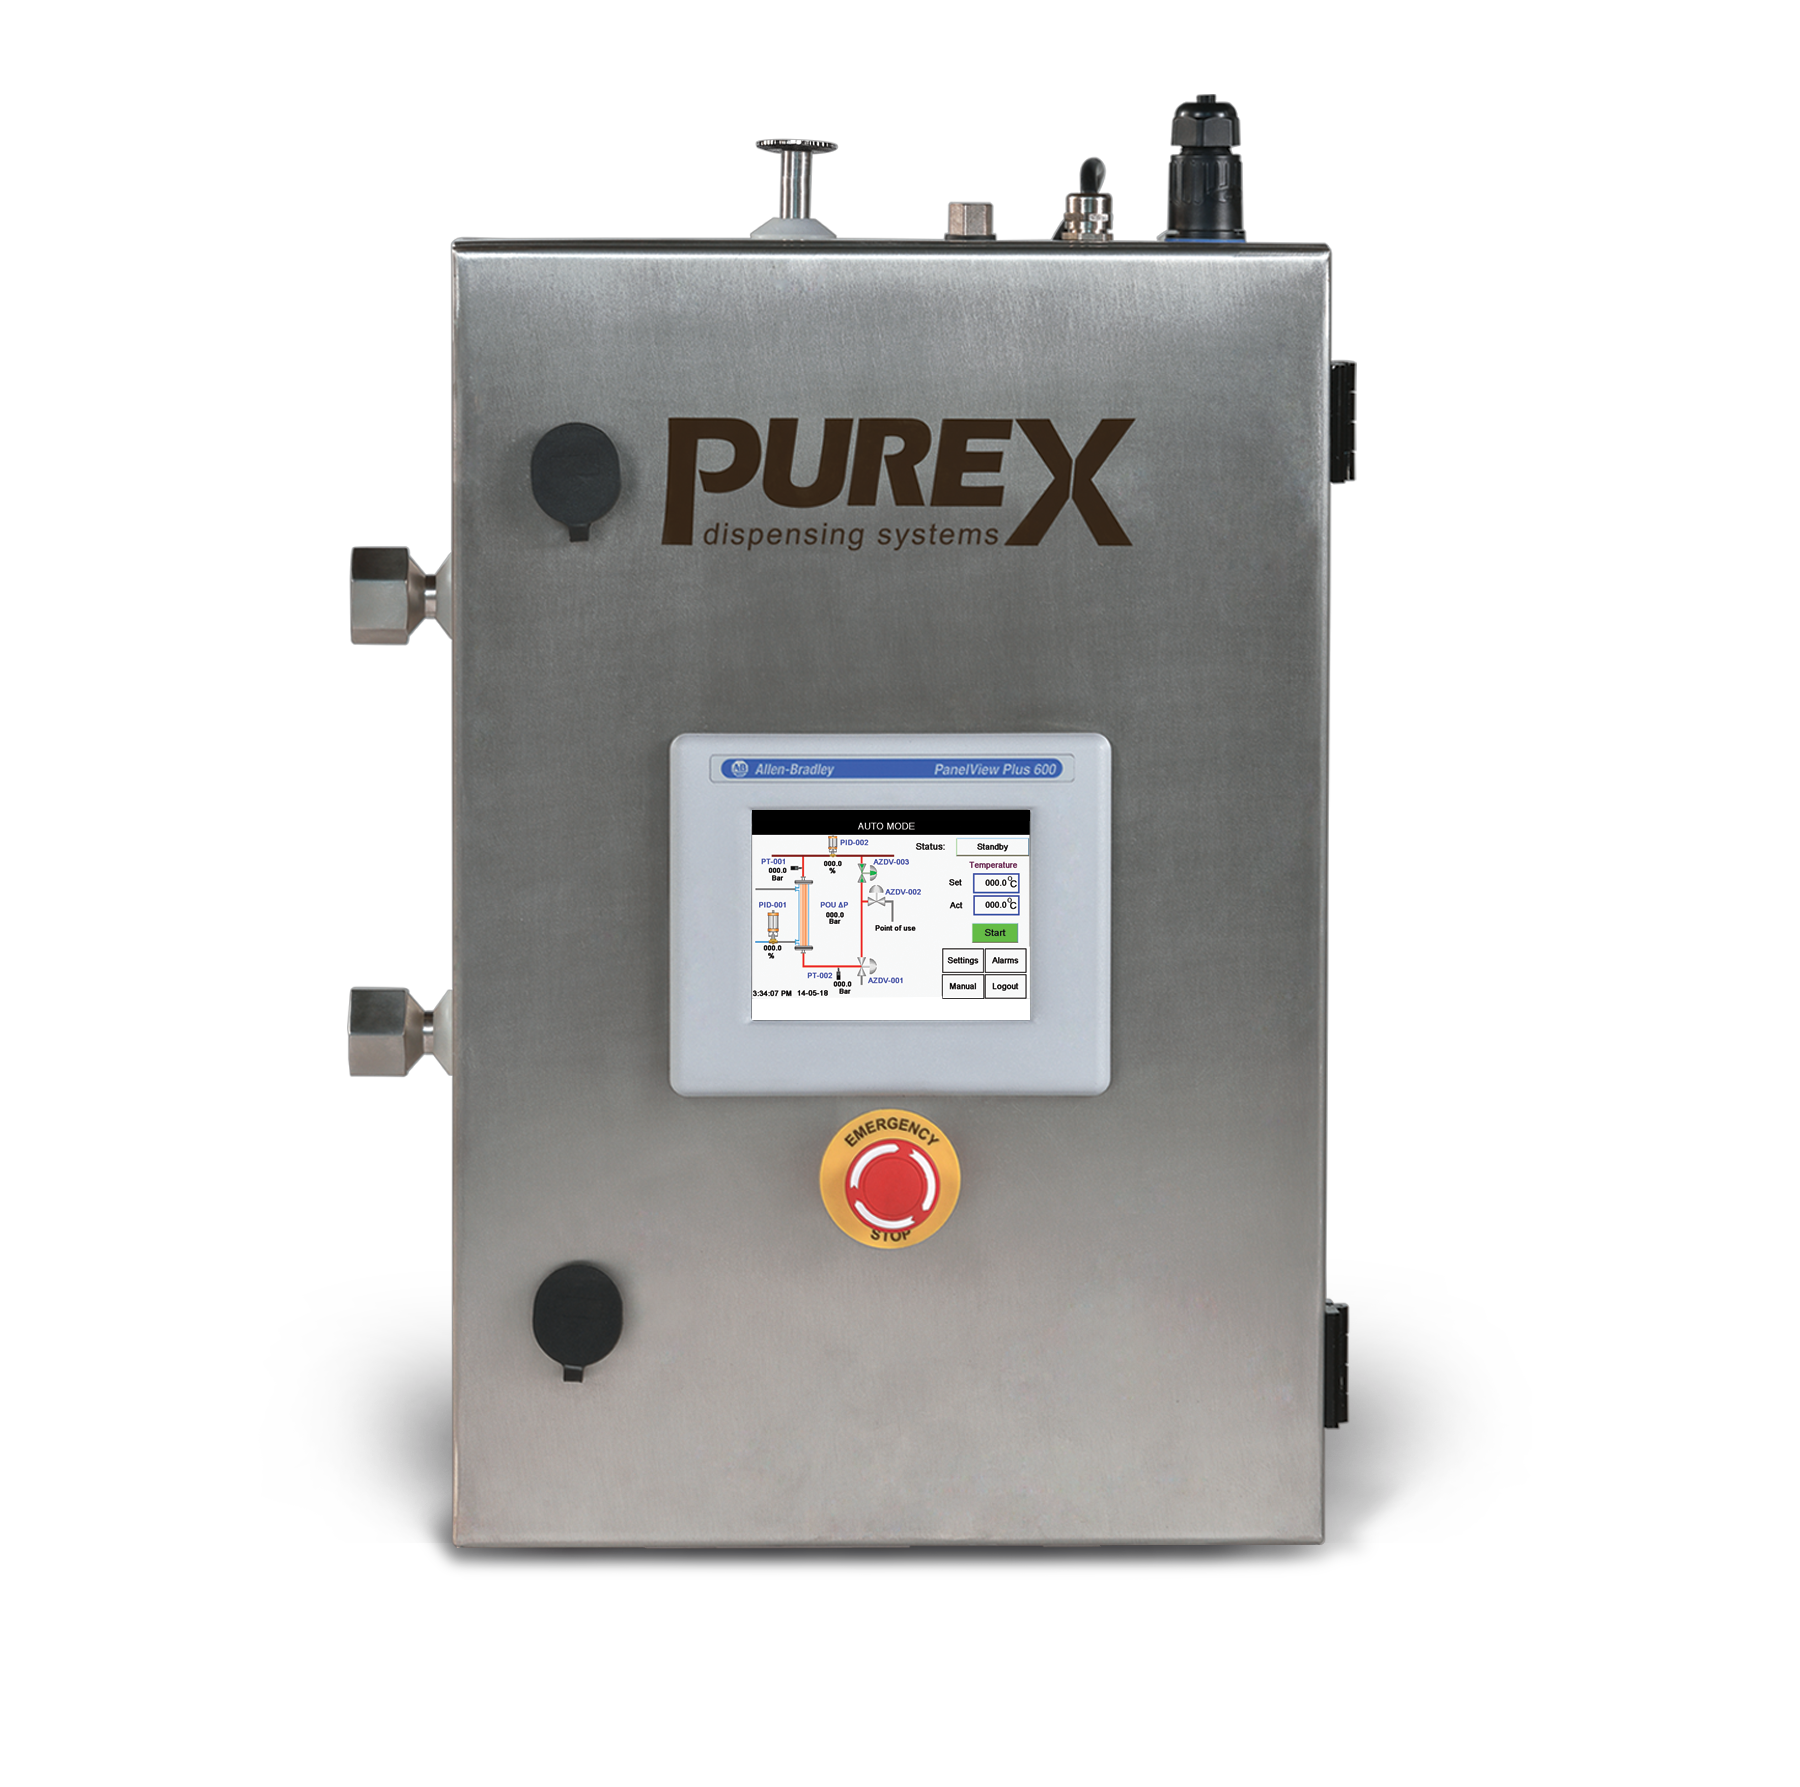 PUREX Point-of-Use WFI/PW Dispensing Sys...